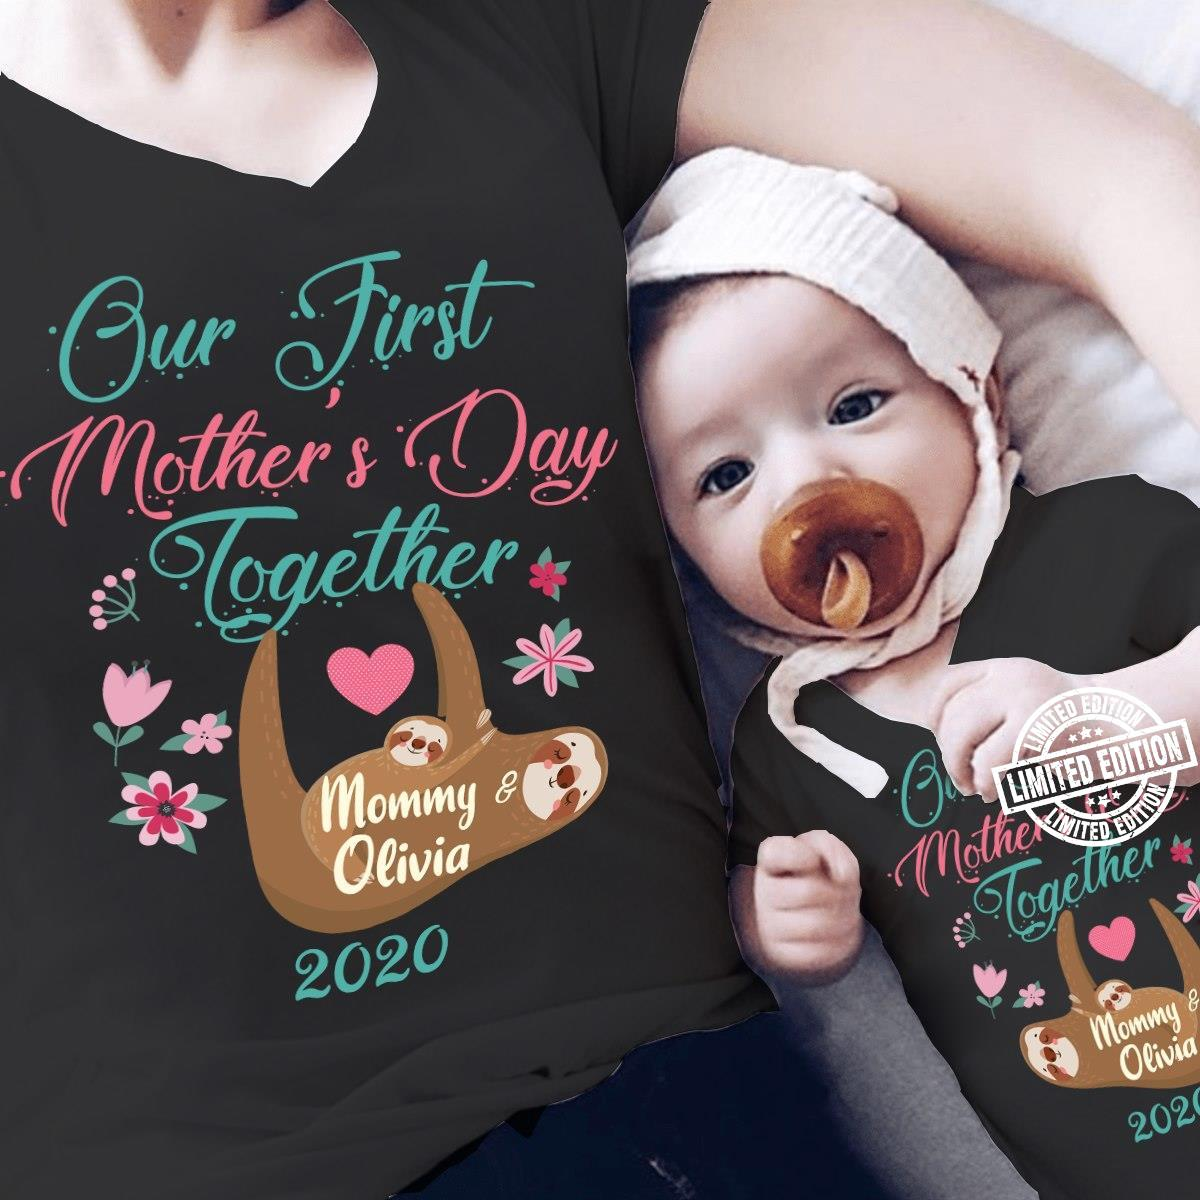 Our first mother's day together 2020 shirt